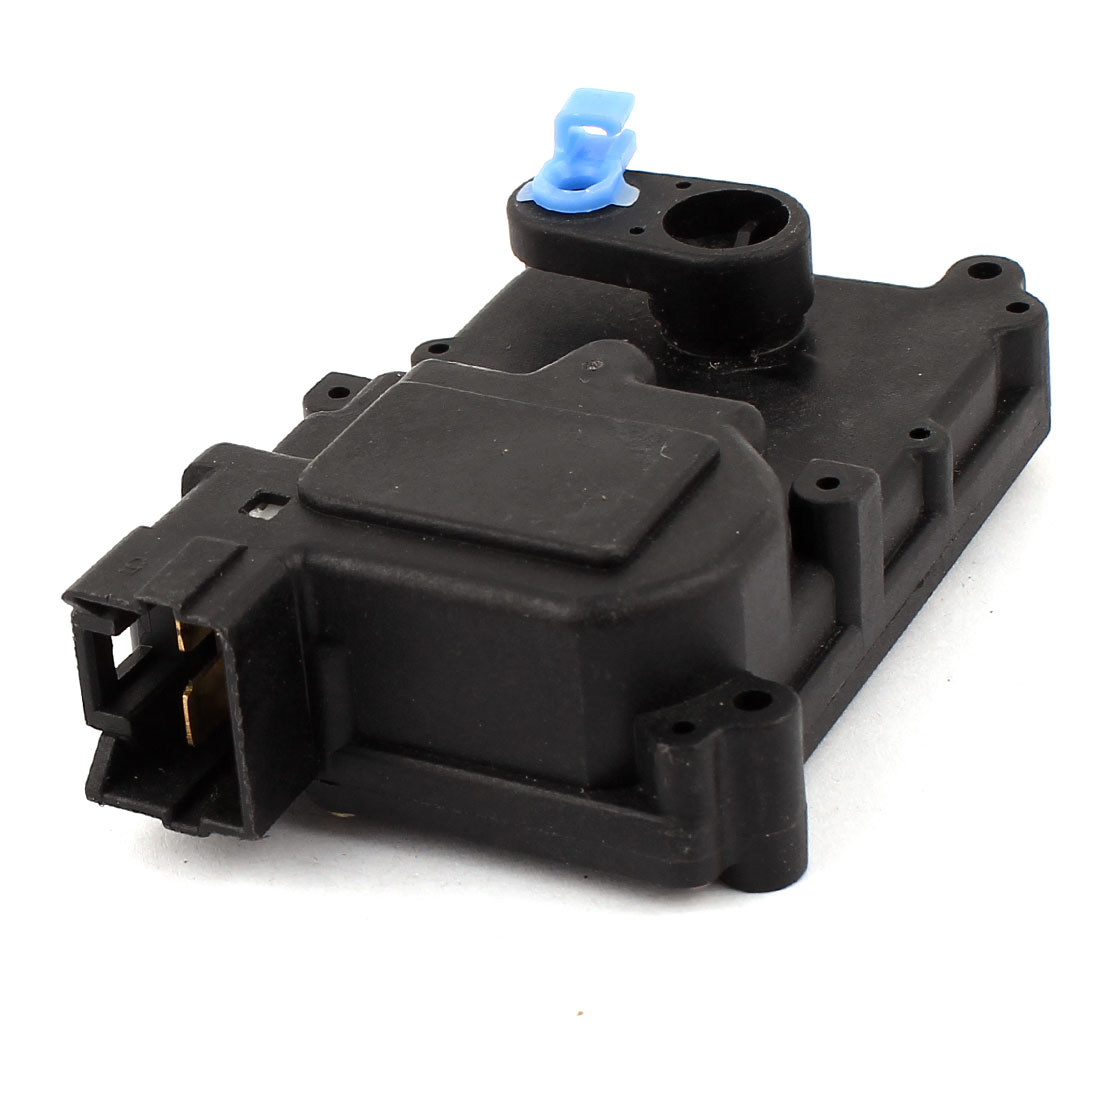 Front Right Side Door Lock Actuator Replacing Part 95756-22020 for Hyundai